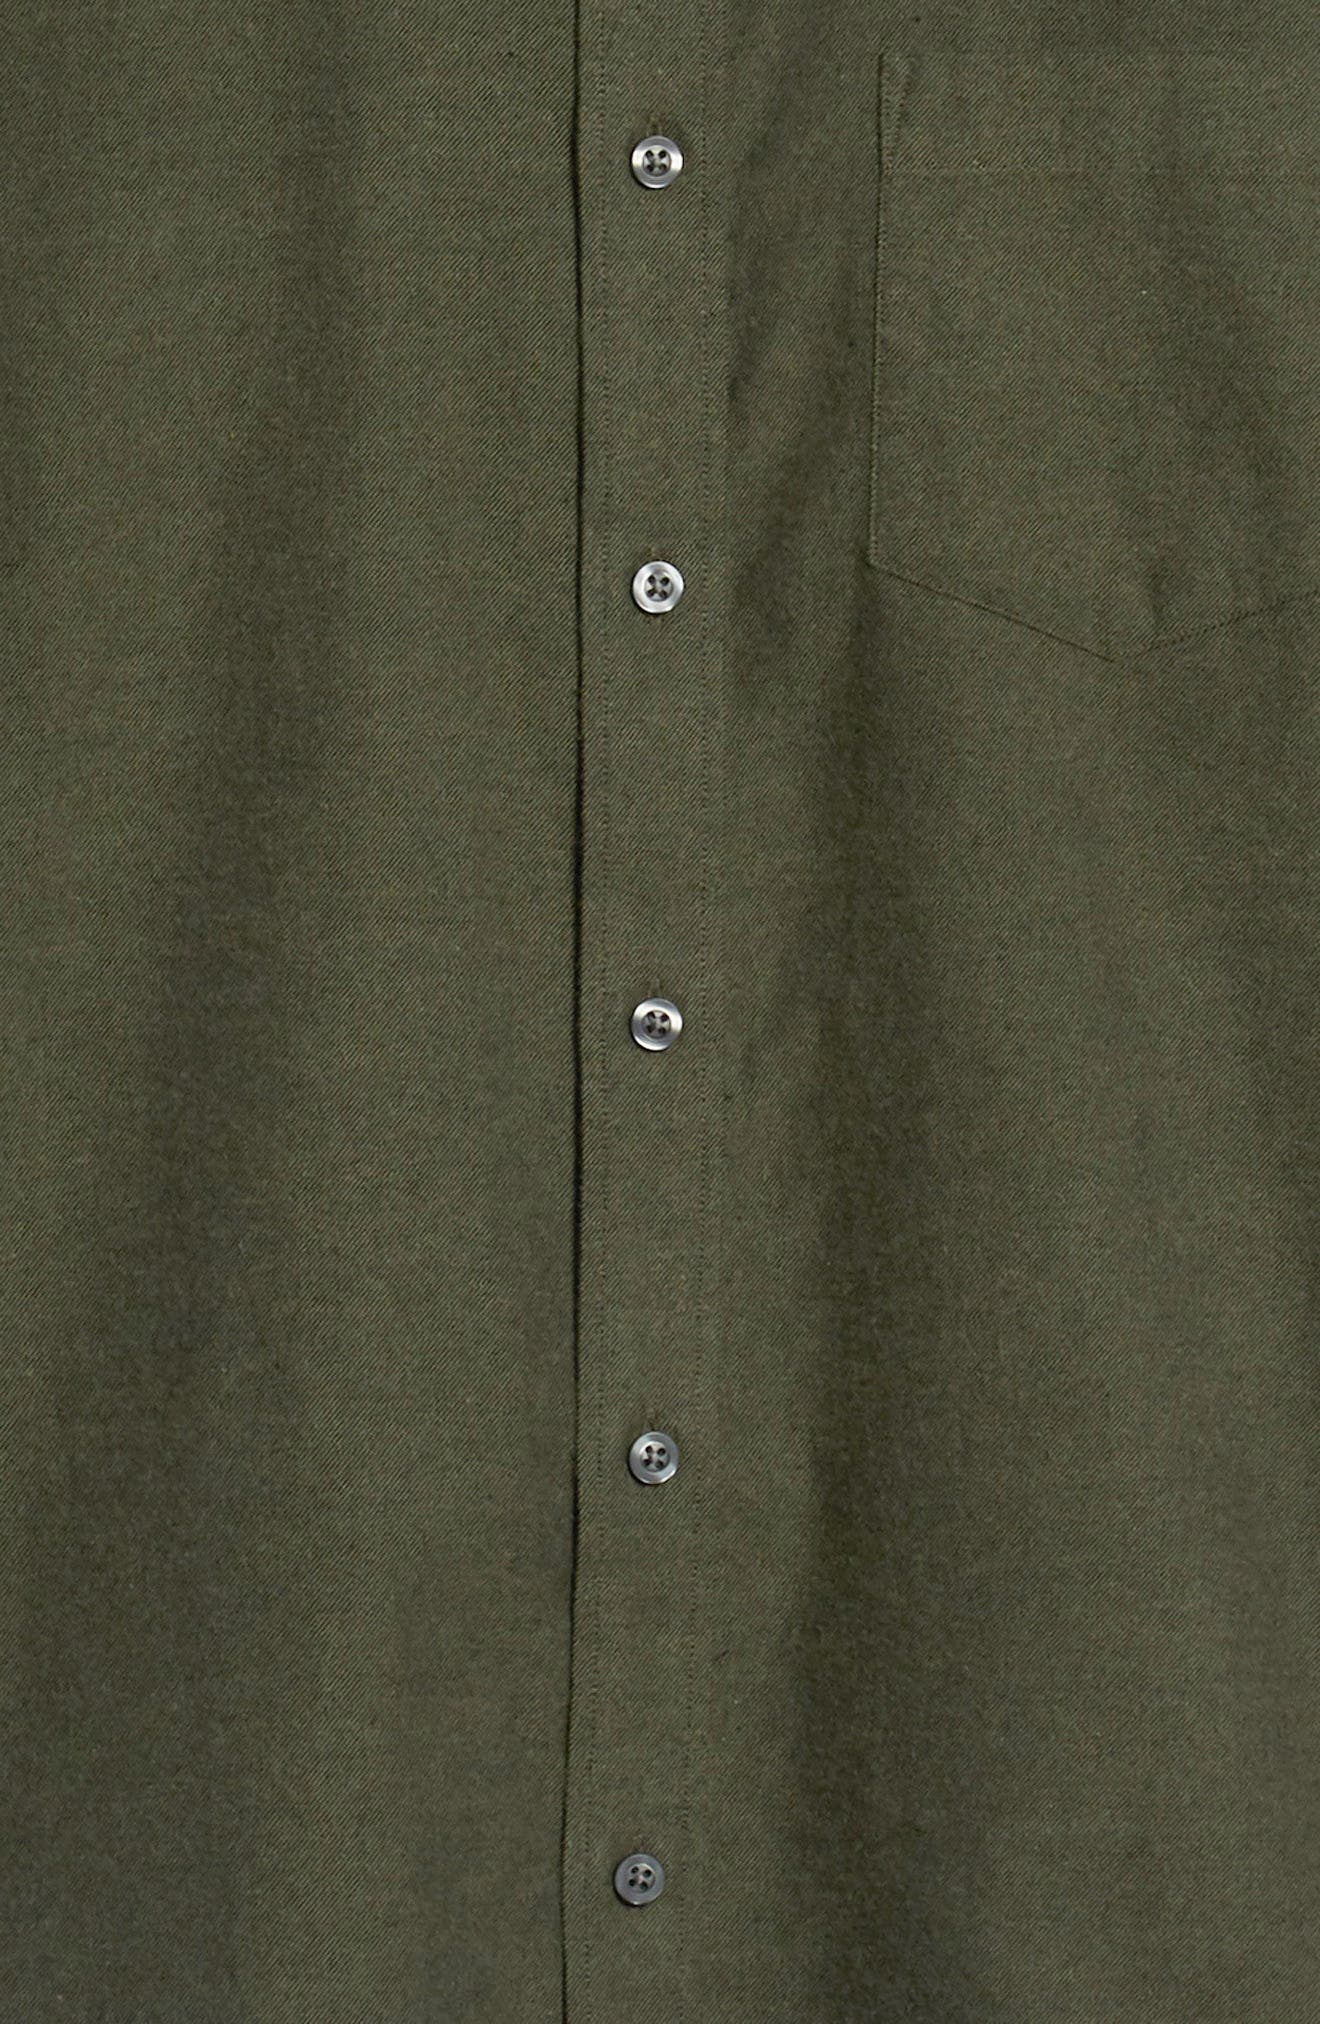 Traditional Fit Brushed Twill Sport Shirt,                             Alternate thumbnail 6, color,                             GREEN FOREST BRUSHED TWILL